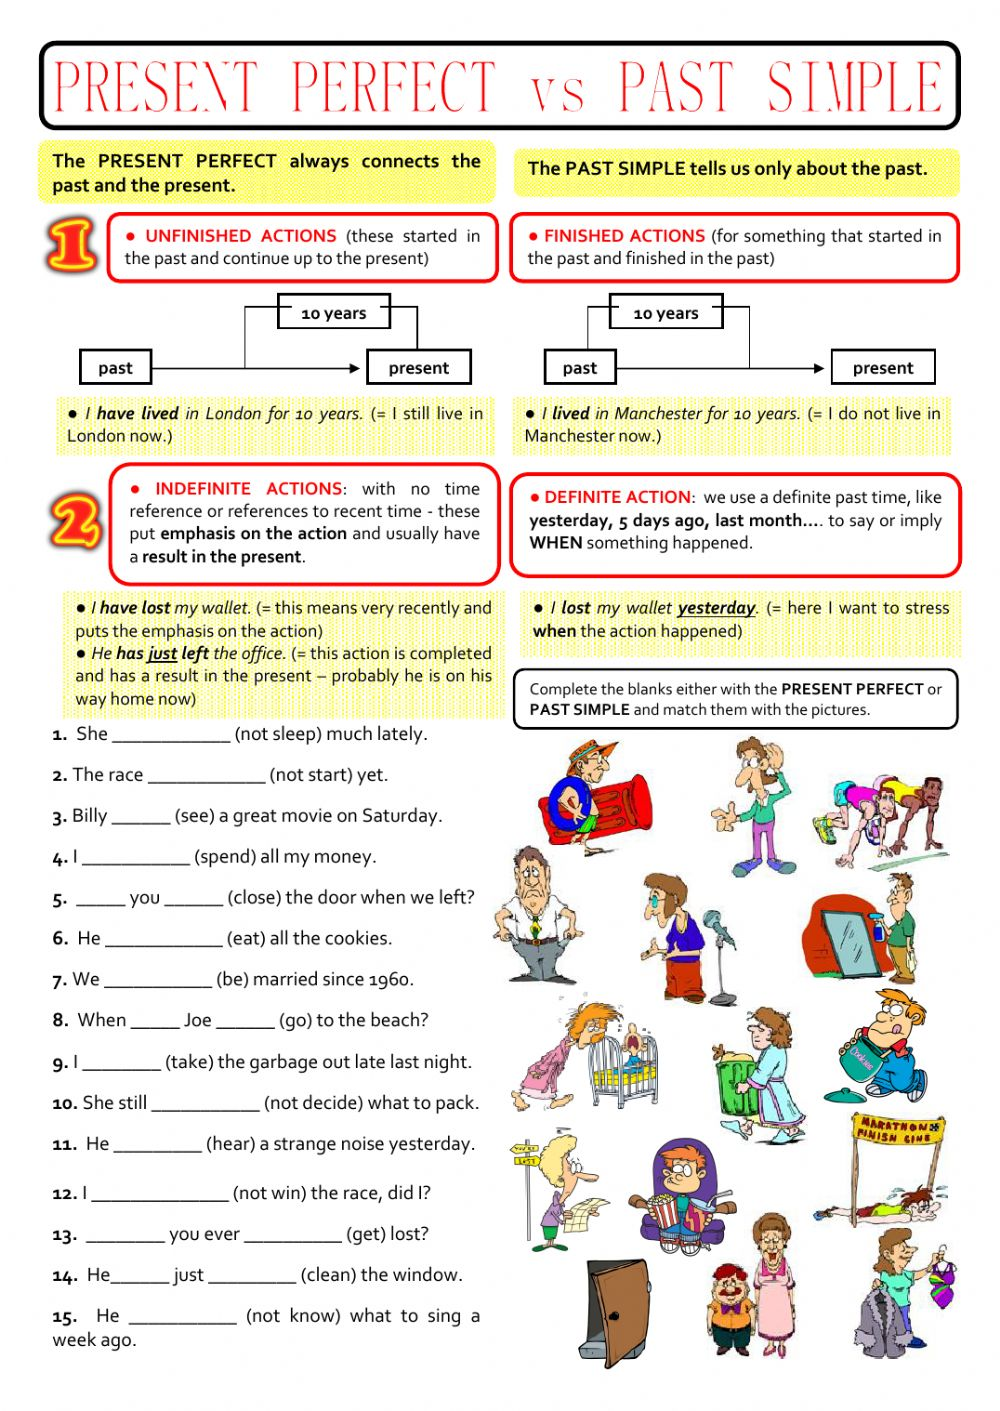 worksheet Past Simple Or Present Perfect Worksheet past simple or present perfect interactive worksheet text